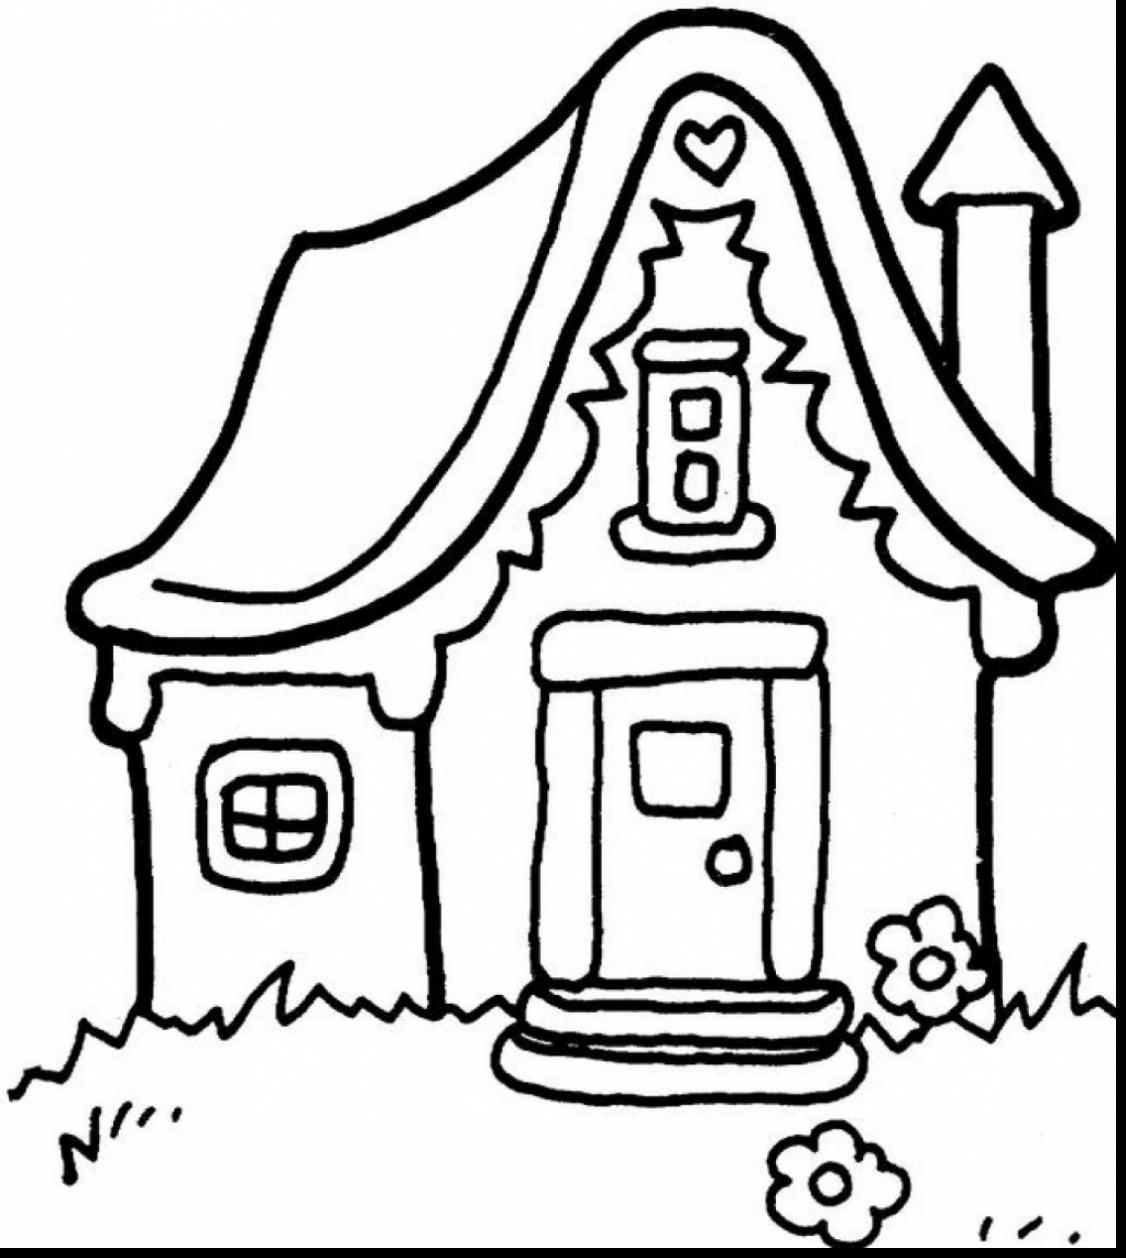 1126x1258 Superb Gingerbread Man Coloring Pages For Kids With Gingerbread